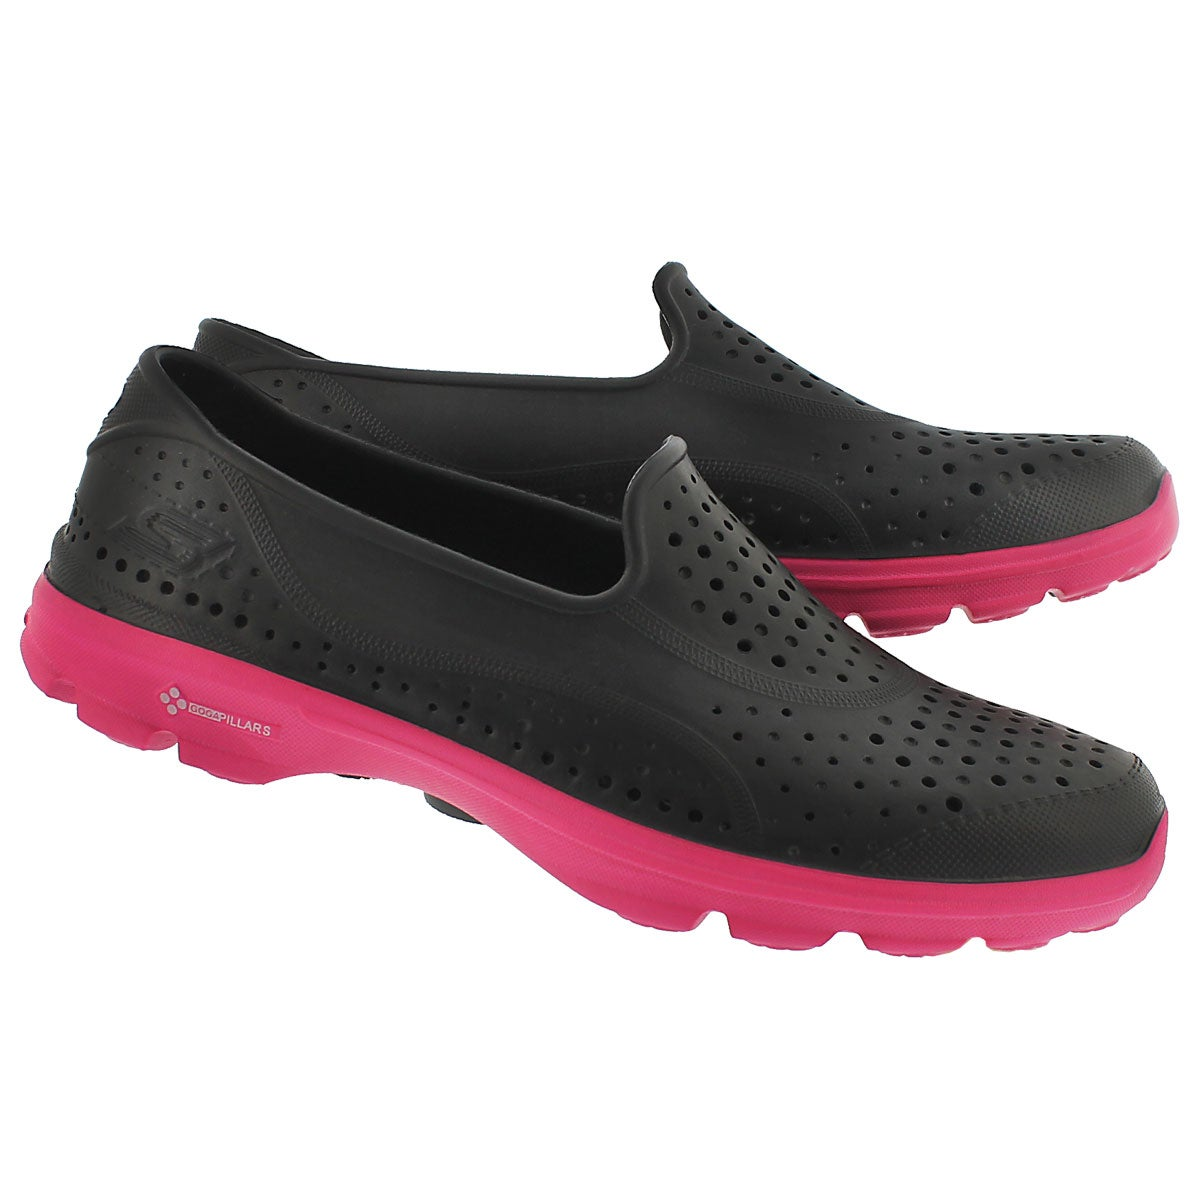 Lds H2 GO black/pink waterproof slip on